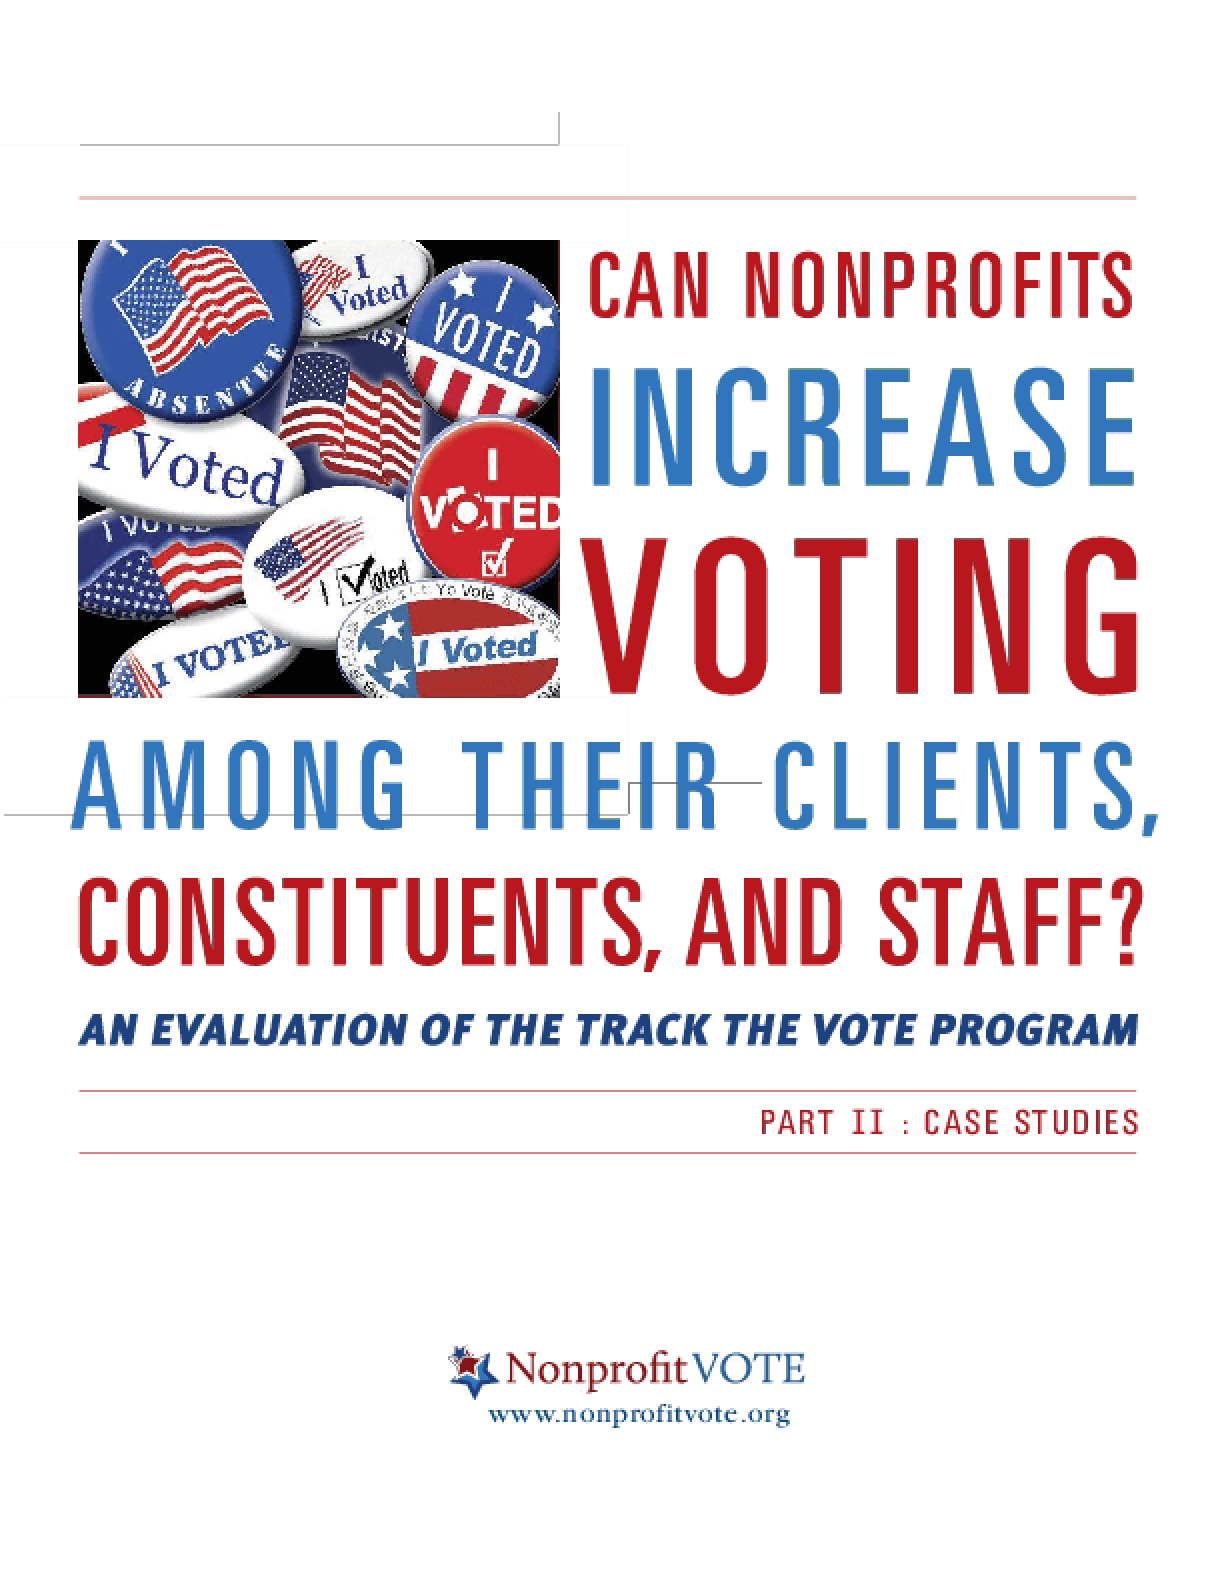 Can Nonprofits Increase Voting Among Their Clients,Constituents, and Staff? An Evaluation of the Track the Vote Program, Part 2: Case Studies